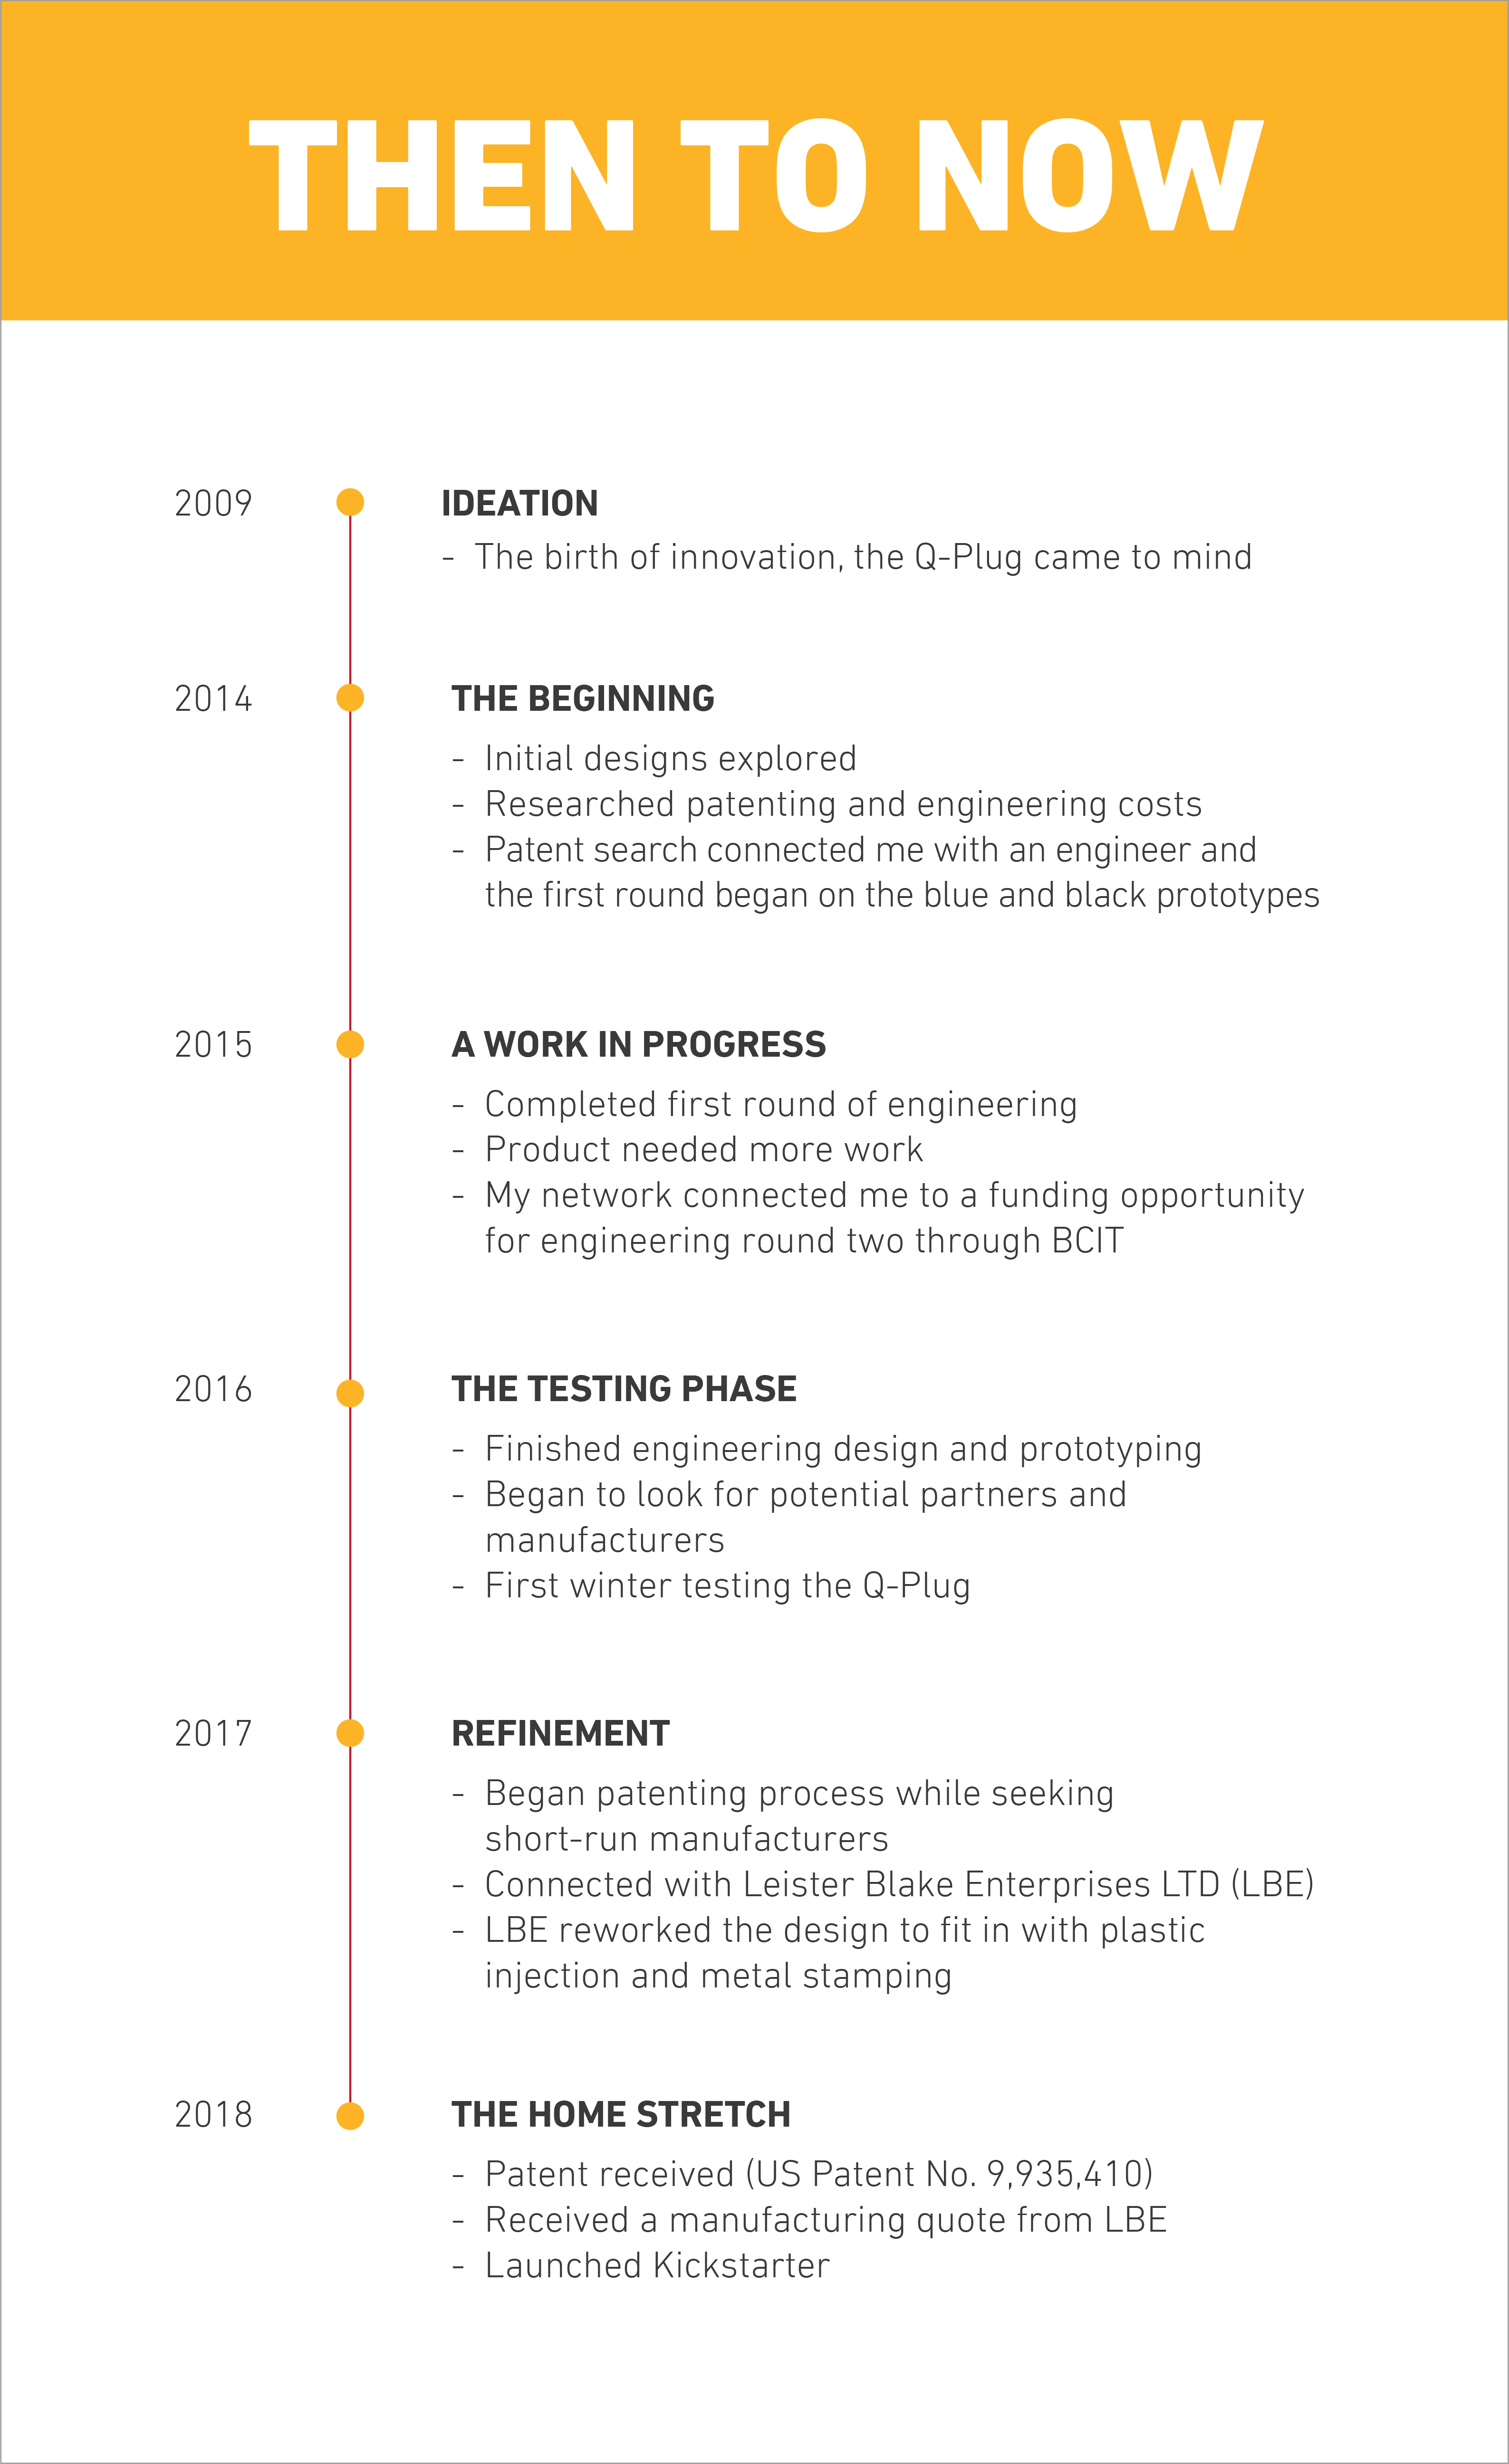 A timeline depicting past events to present day